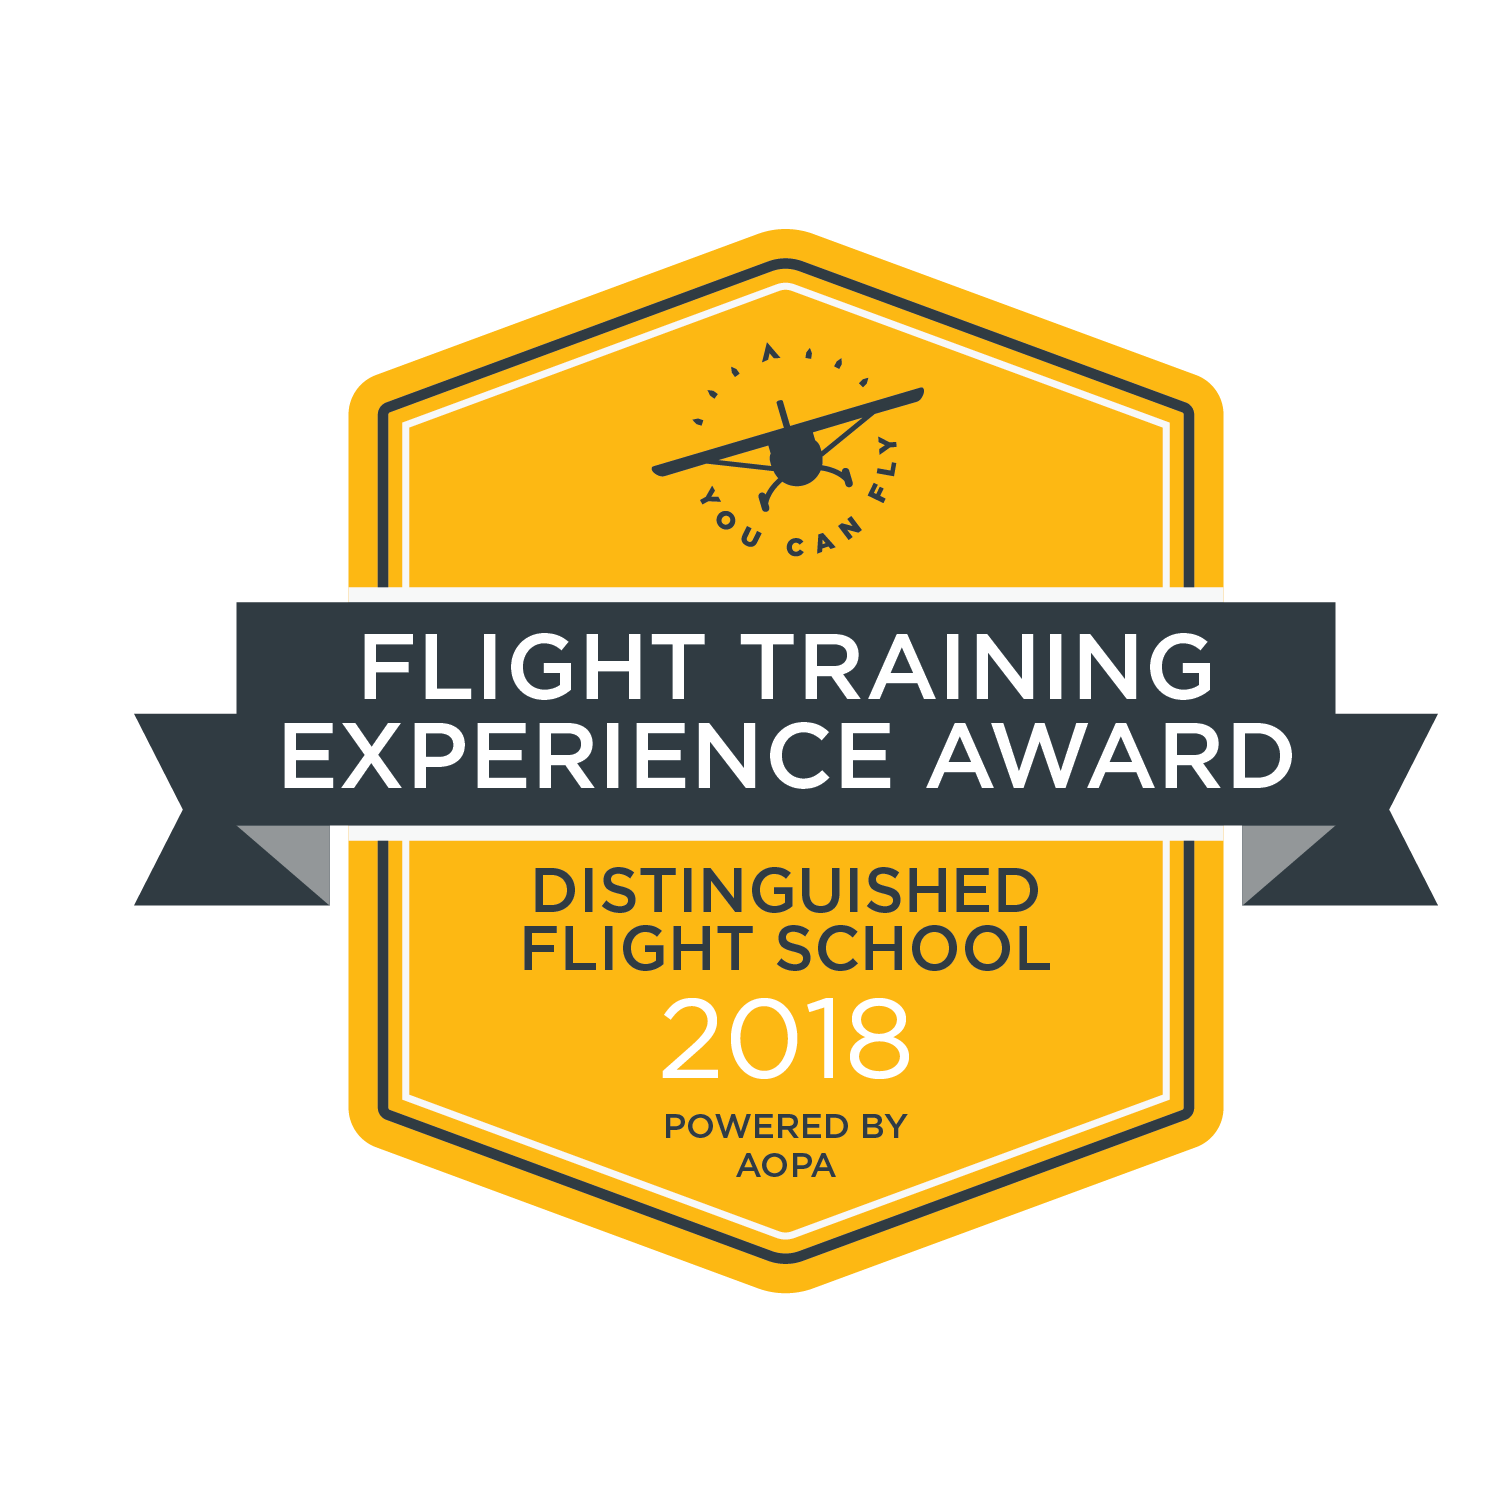 2018 ftawards_ftea_distinguishedflightschool-02.PNG